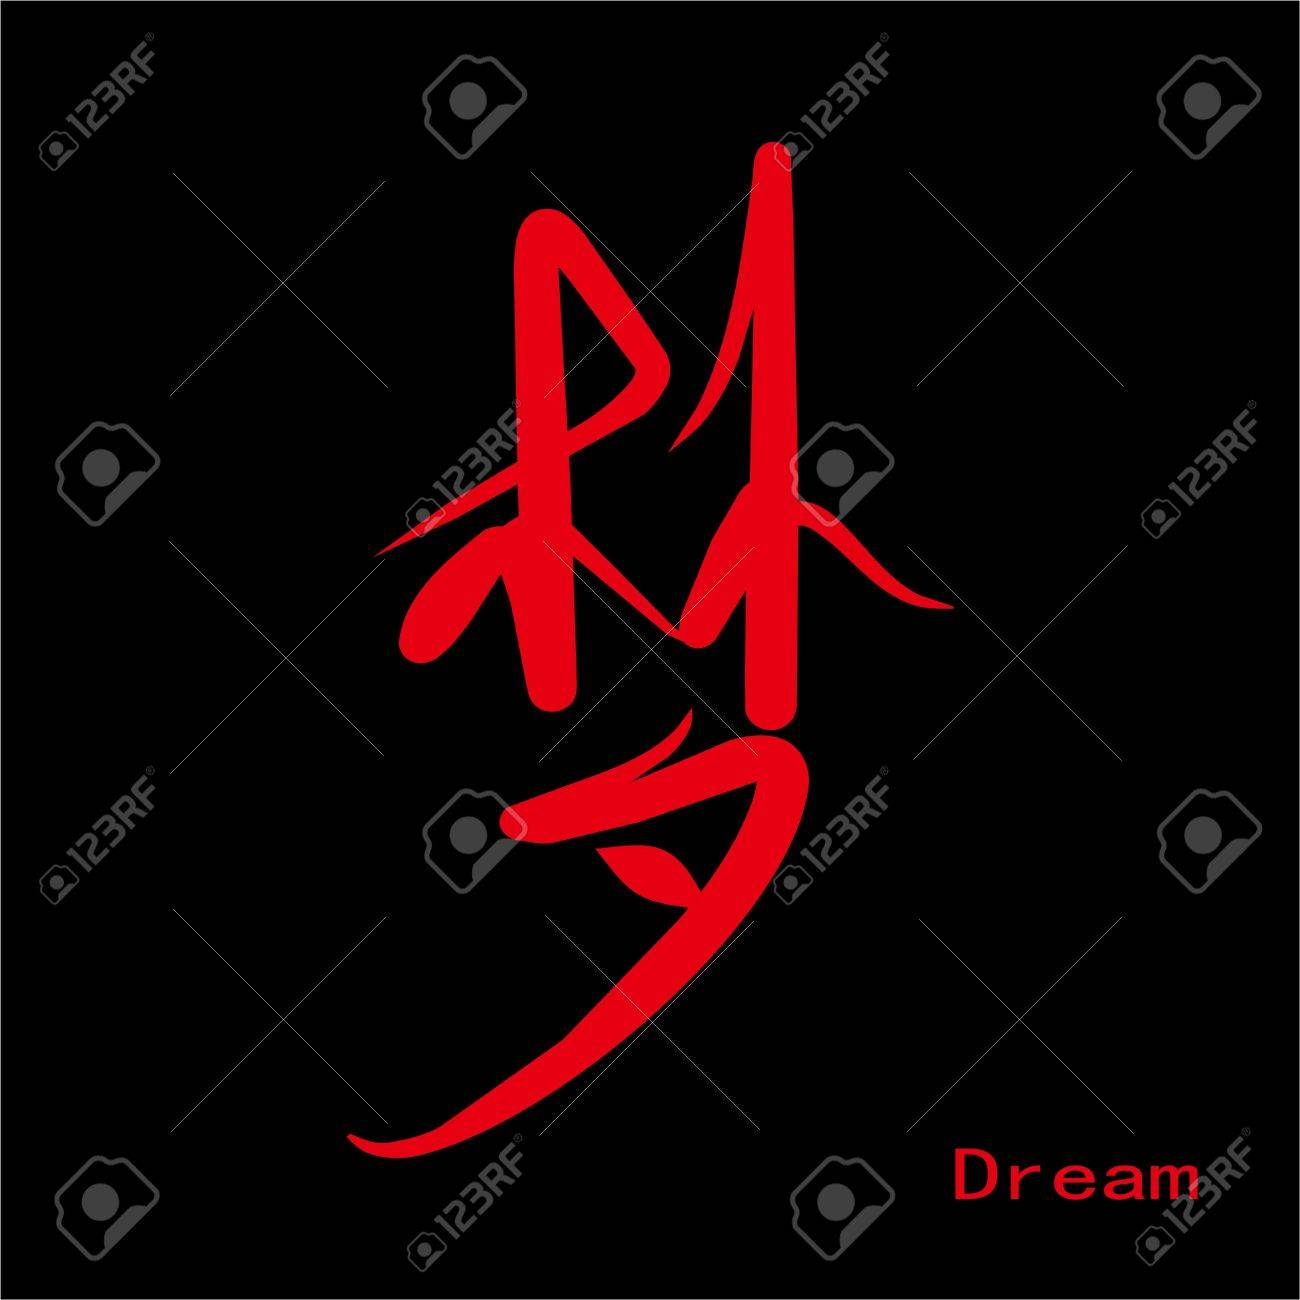 Chinese Character Dream Royalty Free Cliparts Vectors And Stock